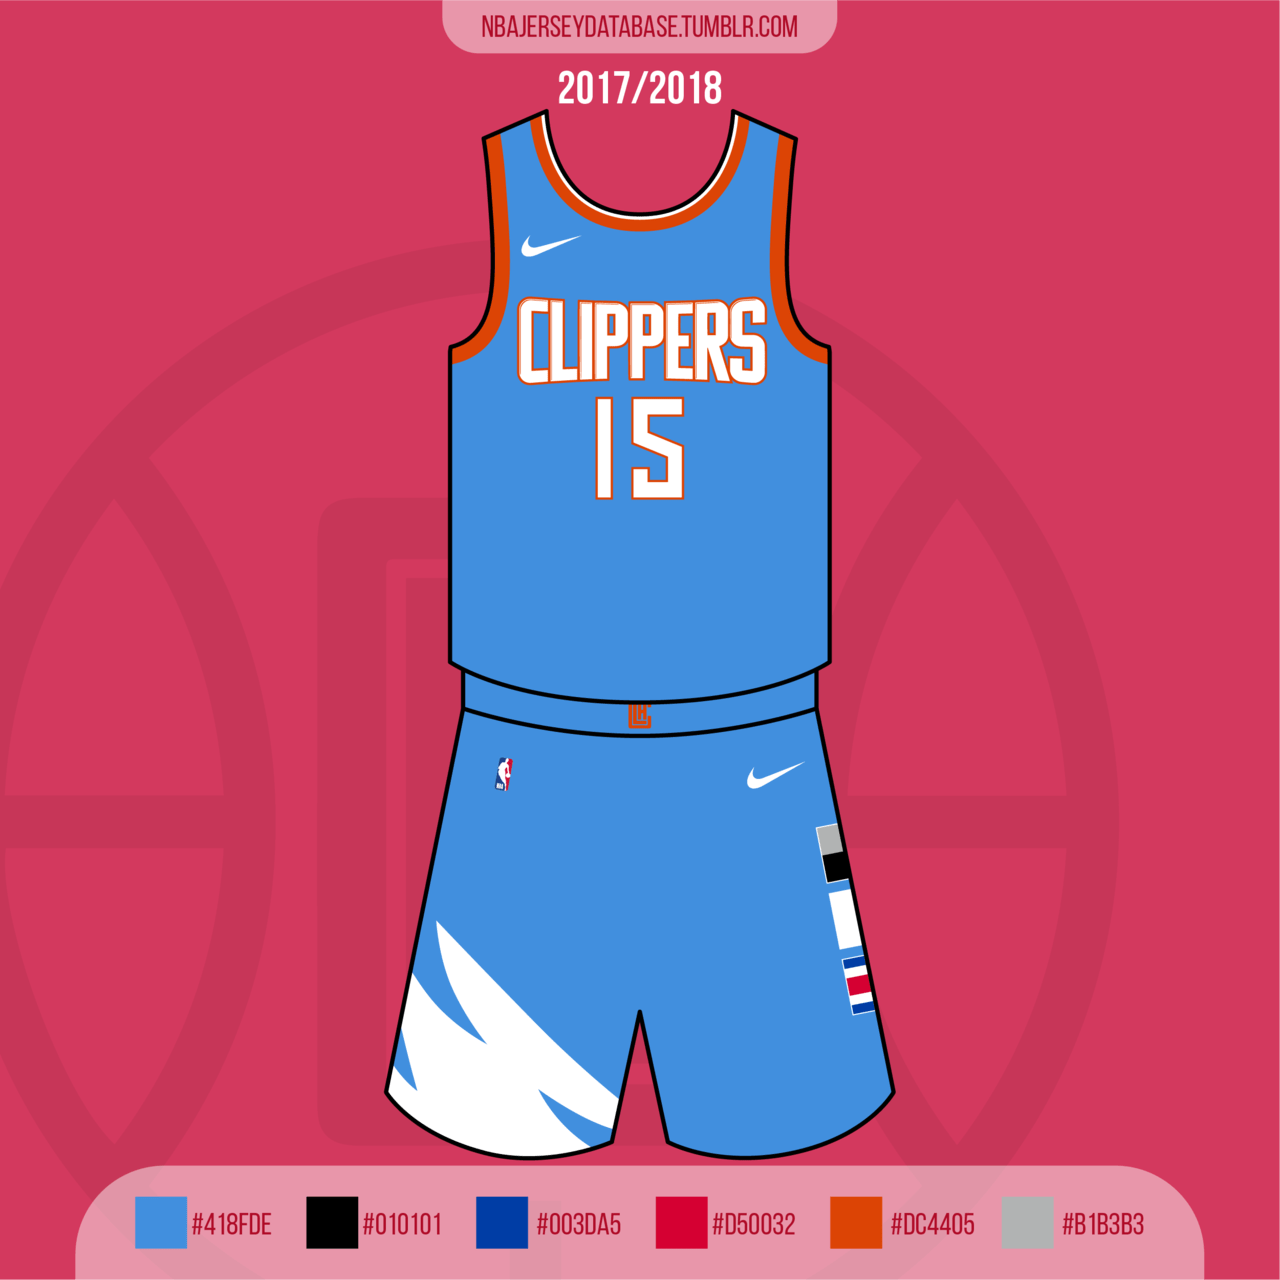 Los Angeles Clippers City Jersey 2017-2018